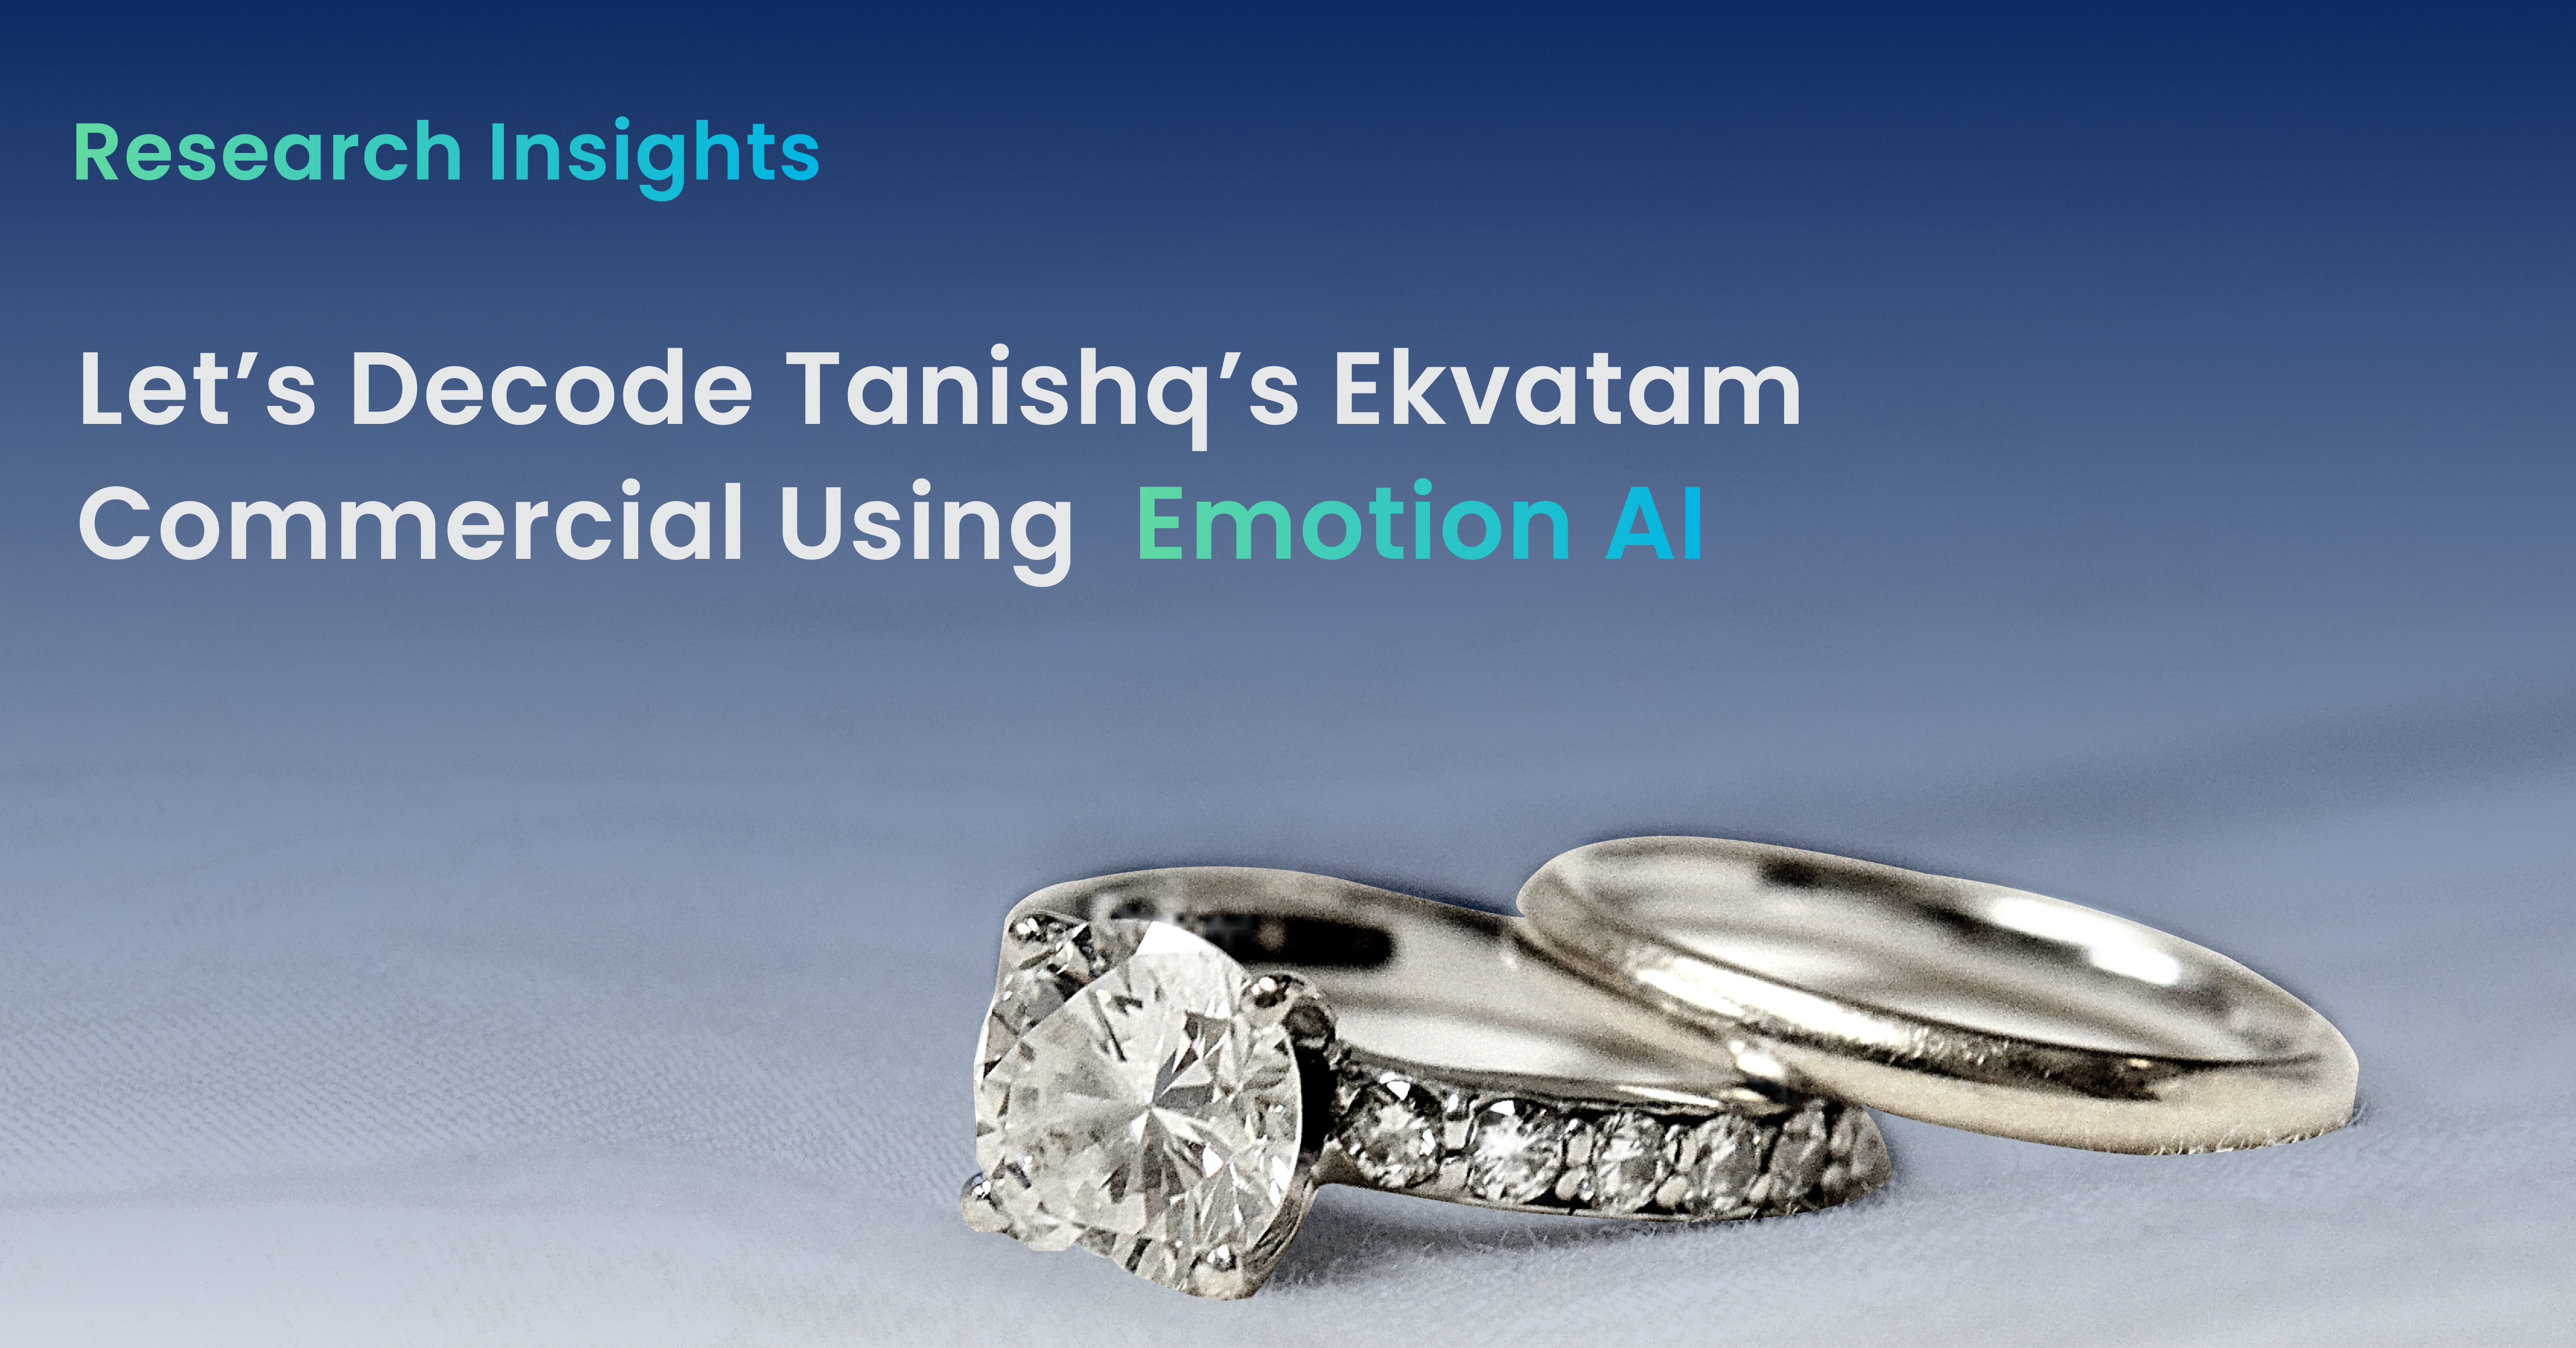 Decoding Tanishq's Ekvatam Commercial Using Ad Insights